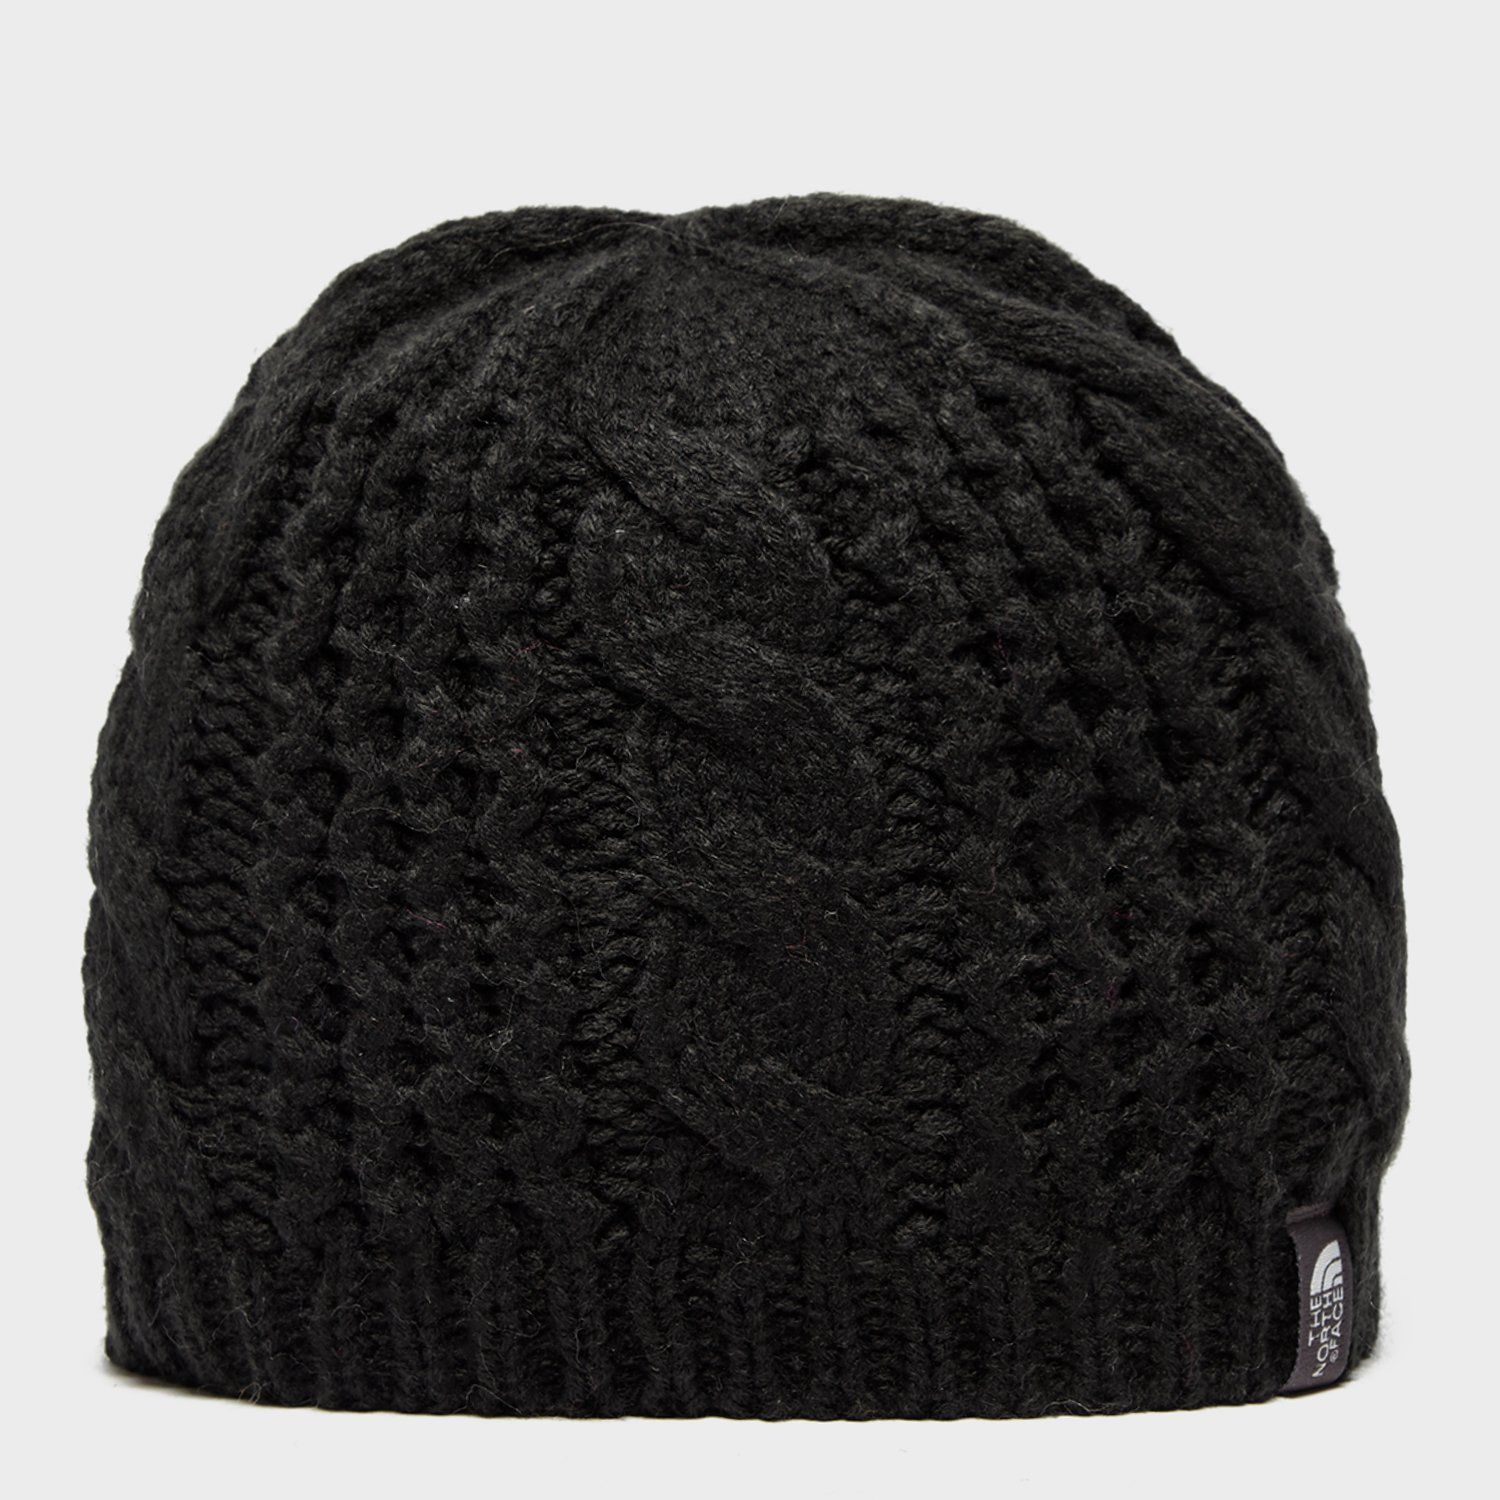 THE NORTH FACE Women's Cable Minna Beanie